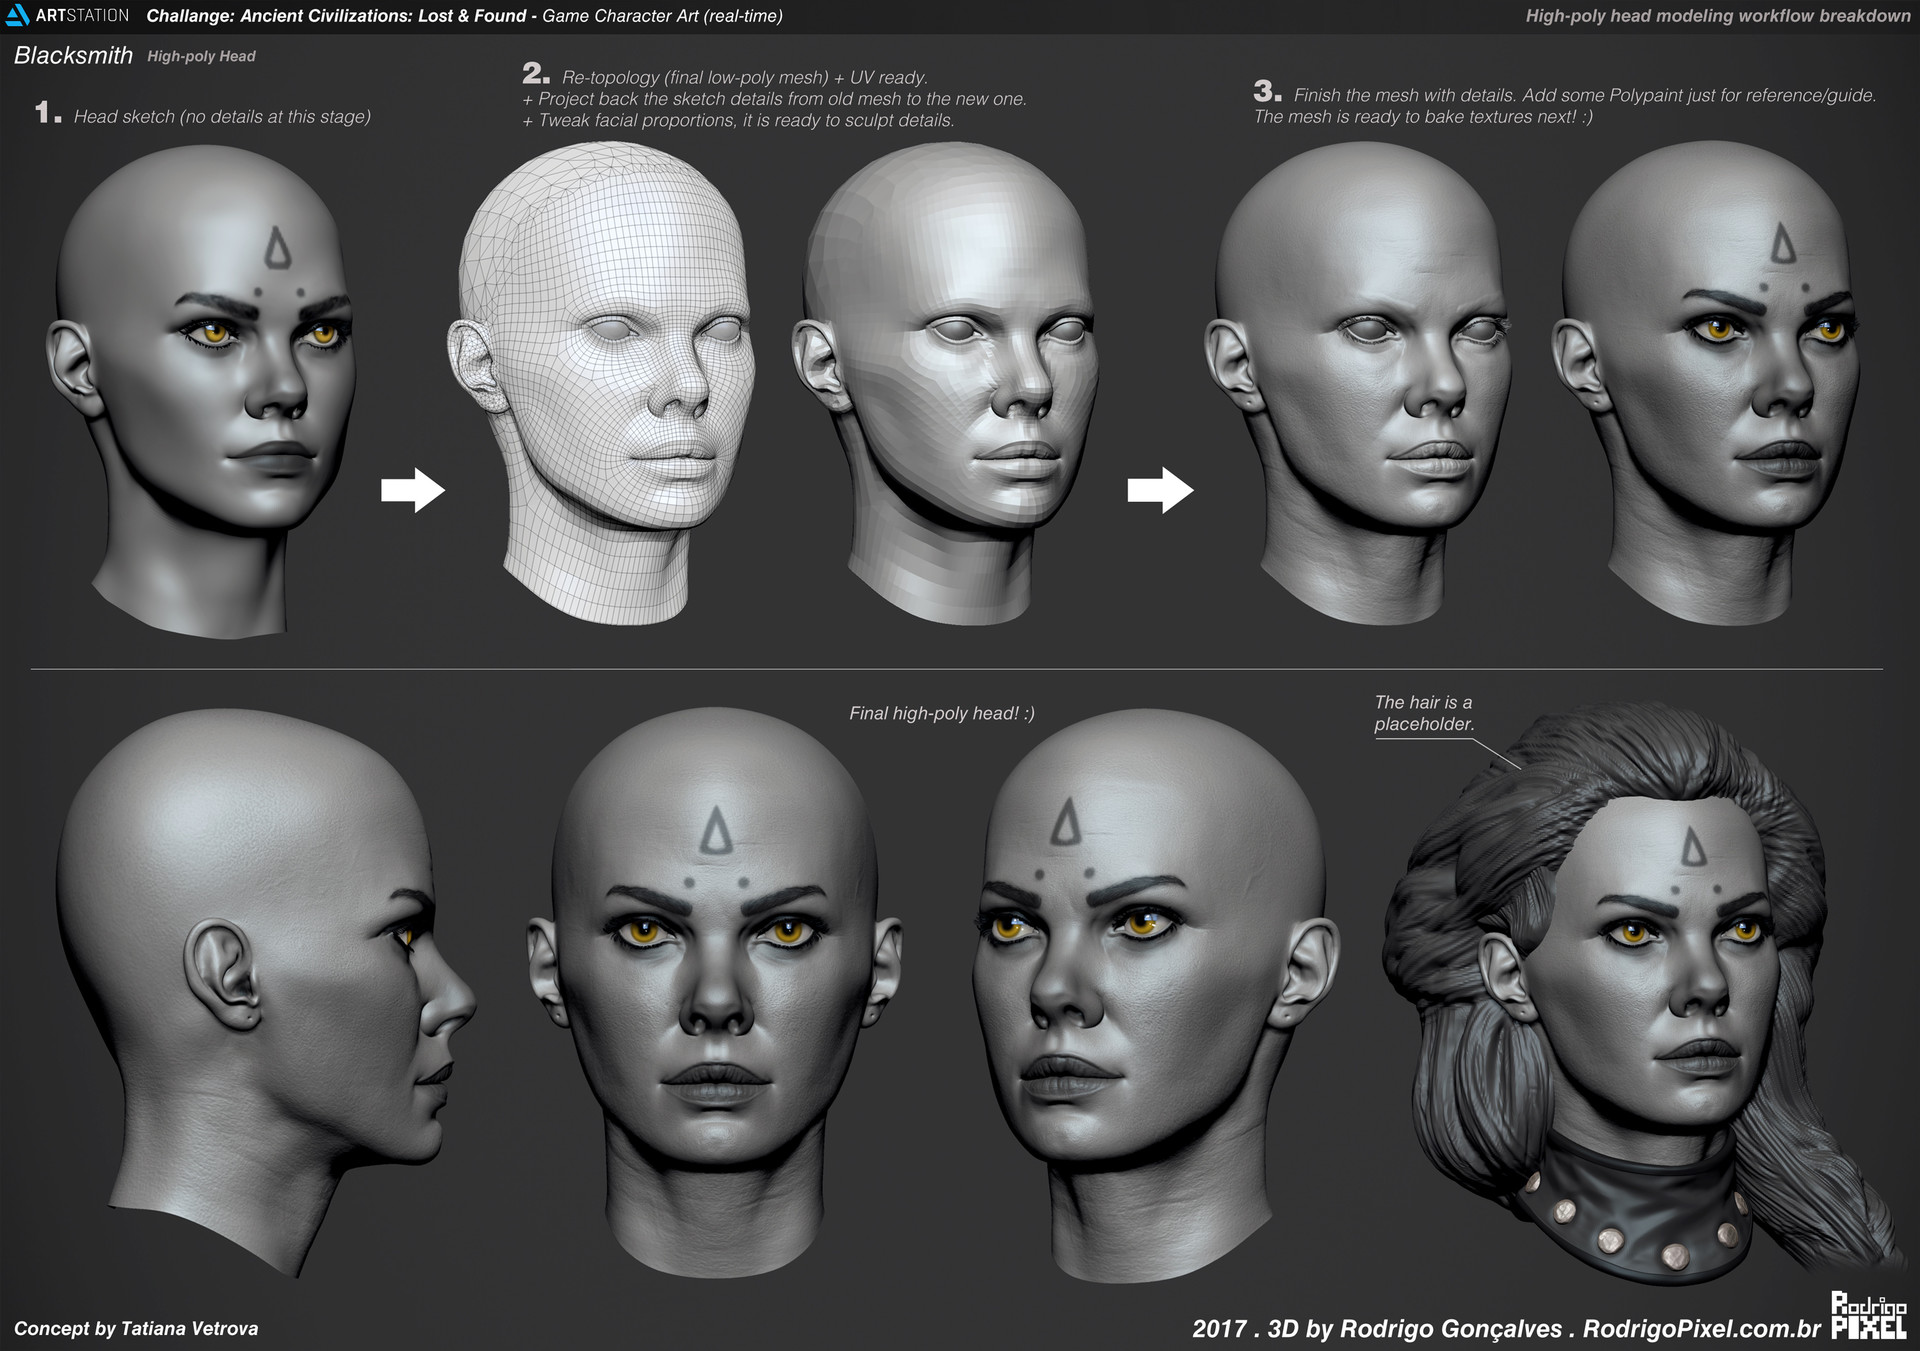 rodrigo-goncalves-blacksmith-highpoly-hex-final2.jpg